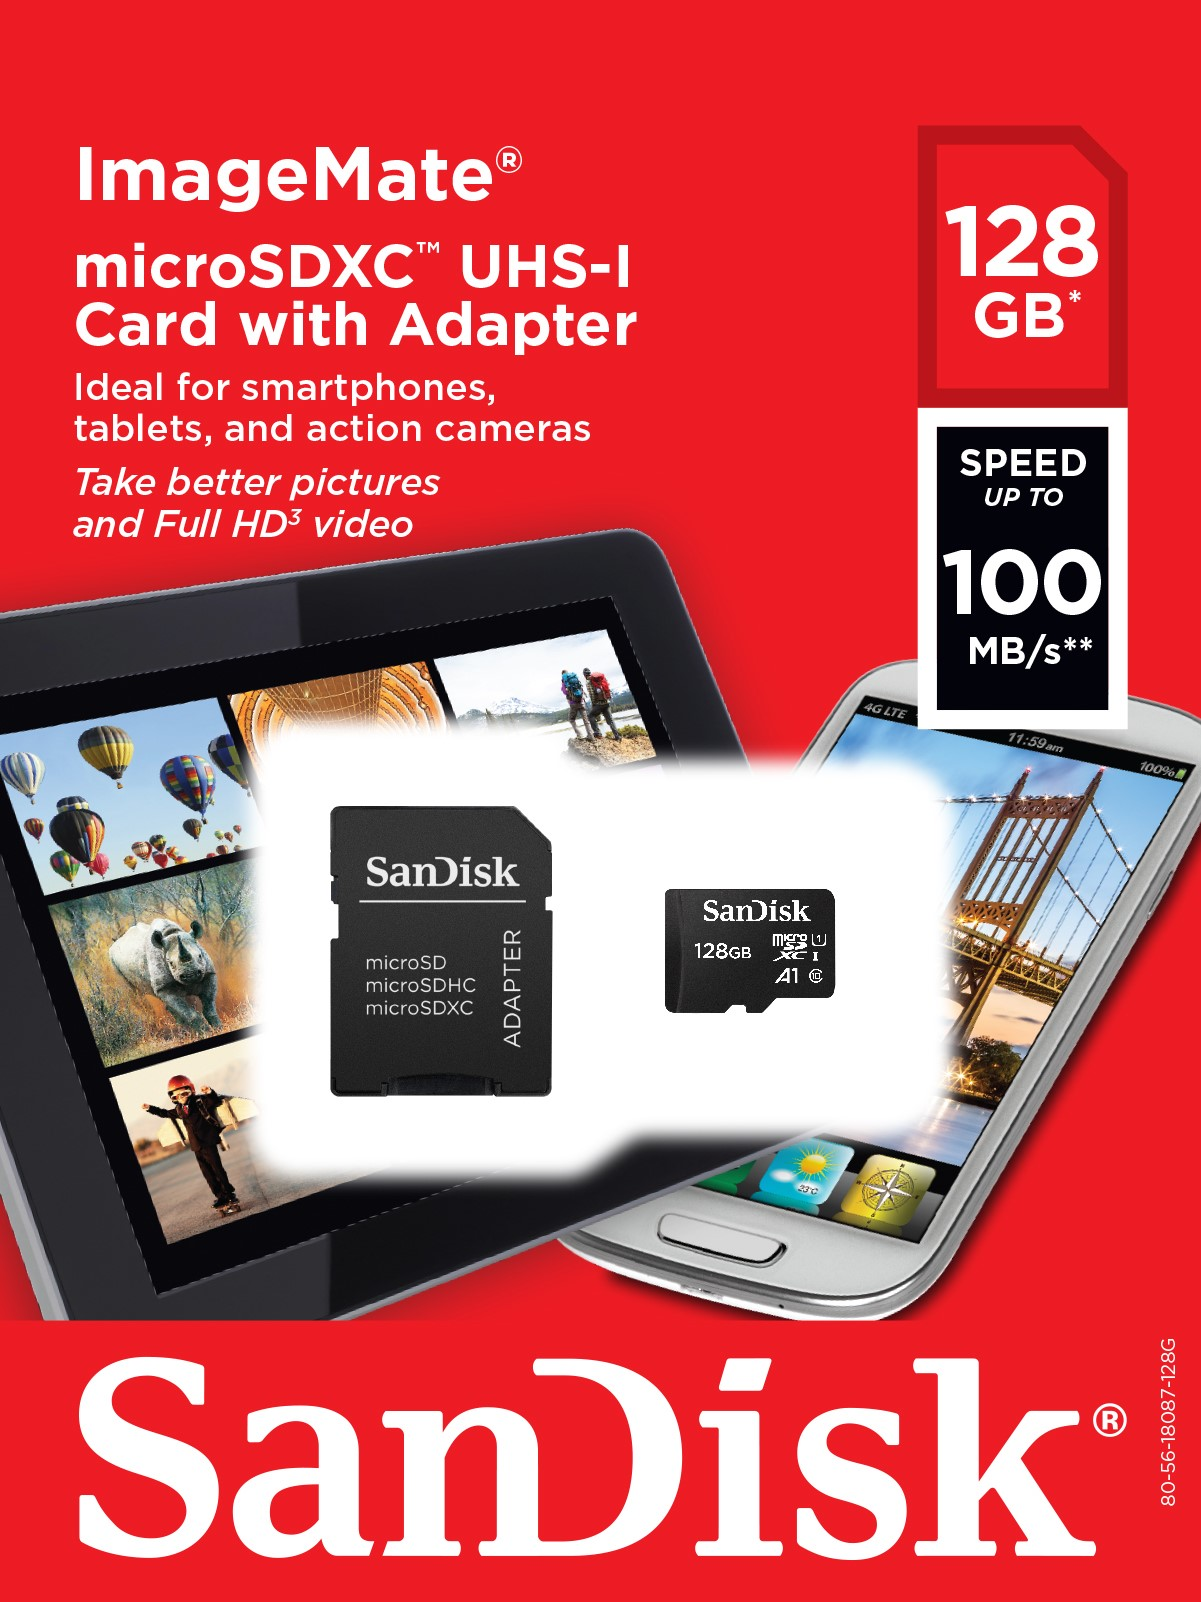 100MBs A1 U1 C10 Works with SanDisk SanDisk Ultra 128GB MicroSDXC Verified for Asus Zenfone 2 Laser 6-inch by SanFlash